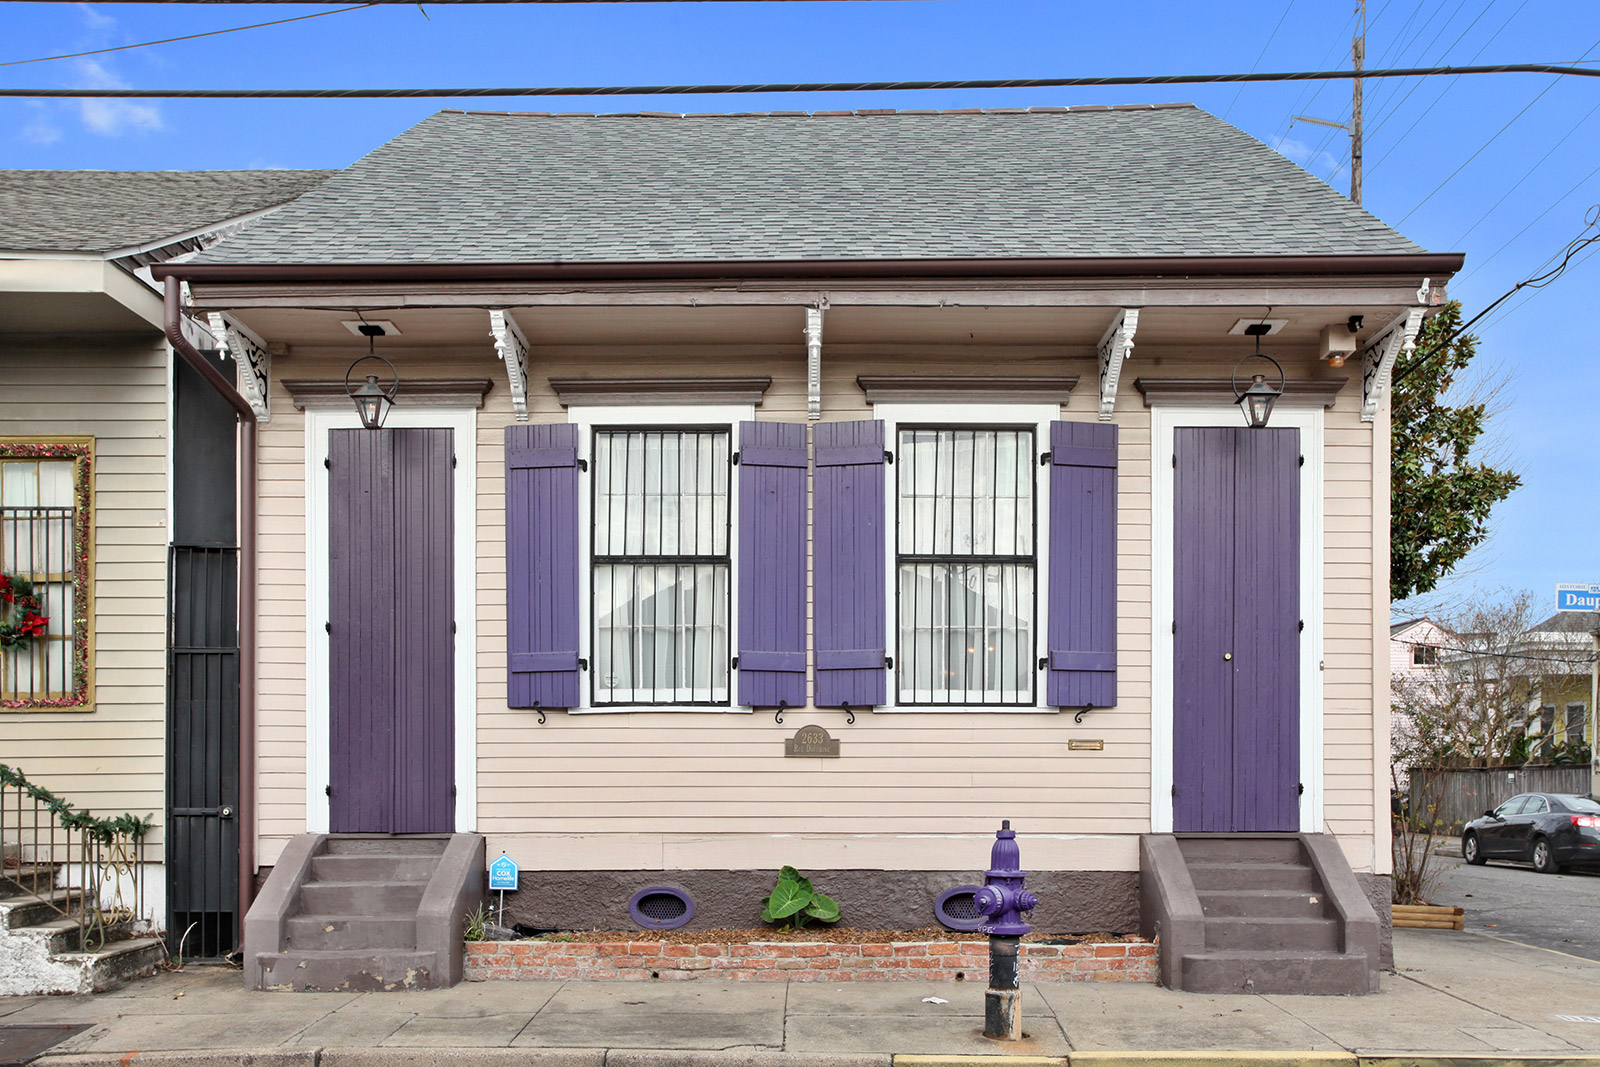 New orleans homes neighborhoods architecture and real for Cajun cottages